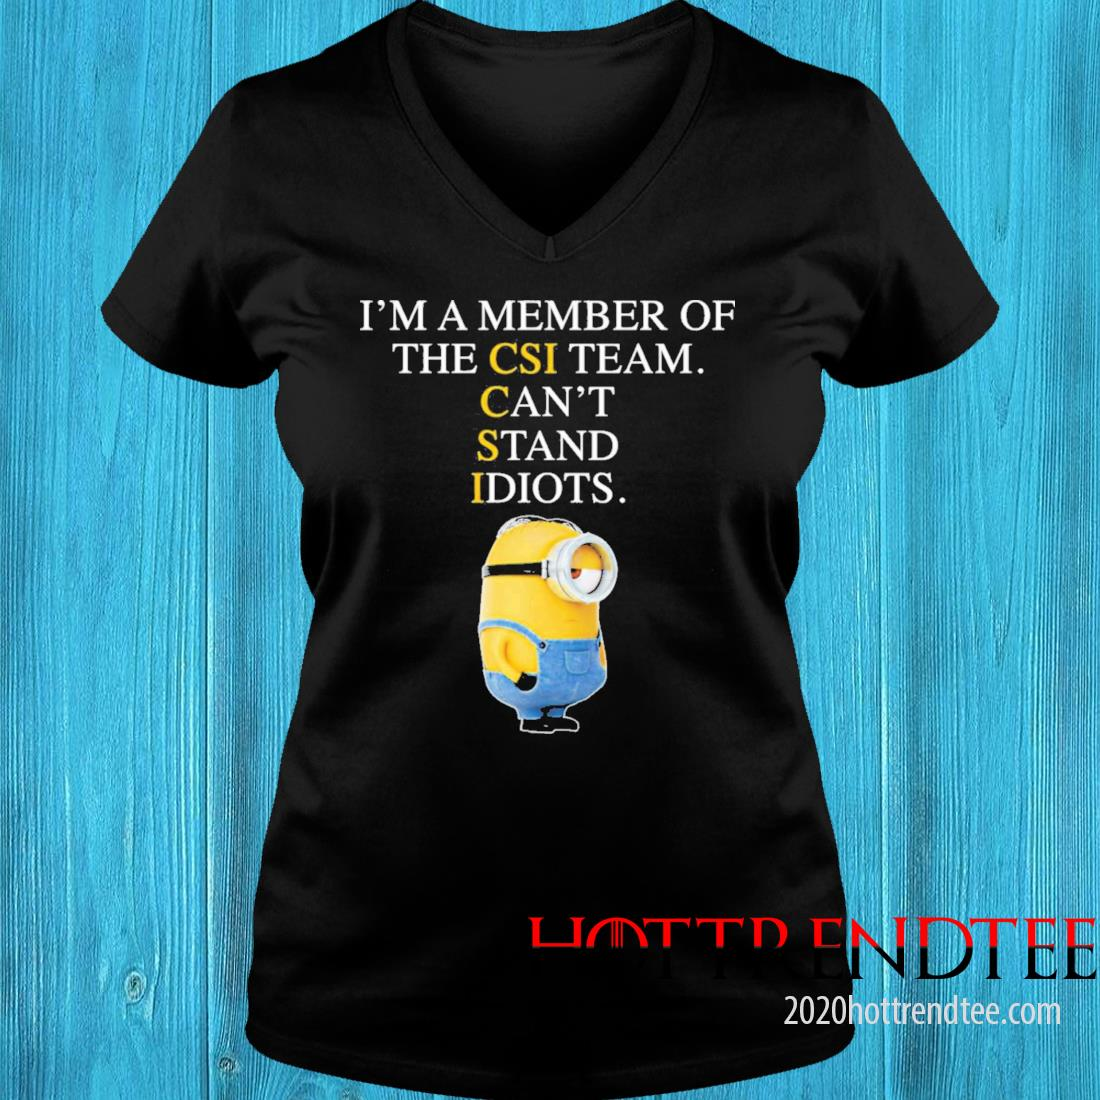 Minion I'm A Member Of The Cis Team Can't Stand Idiots Shirt v-neck tee